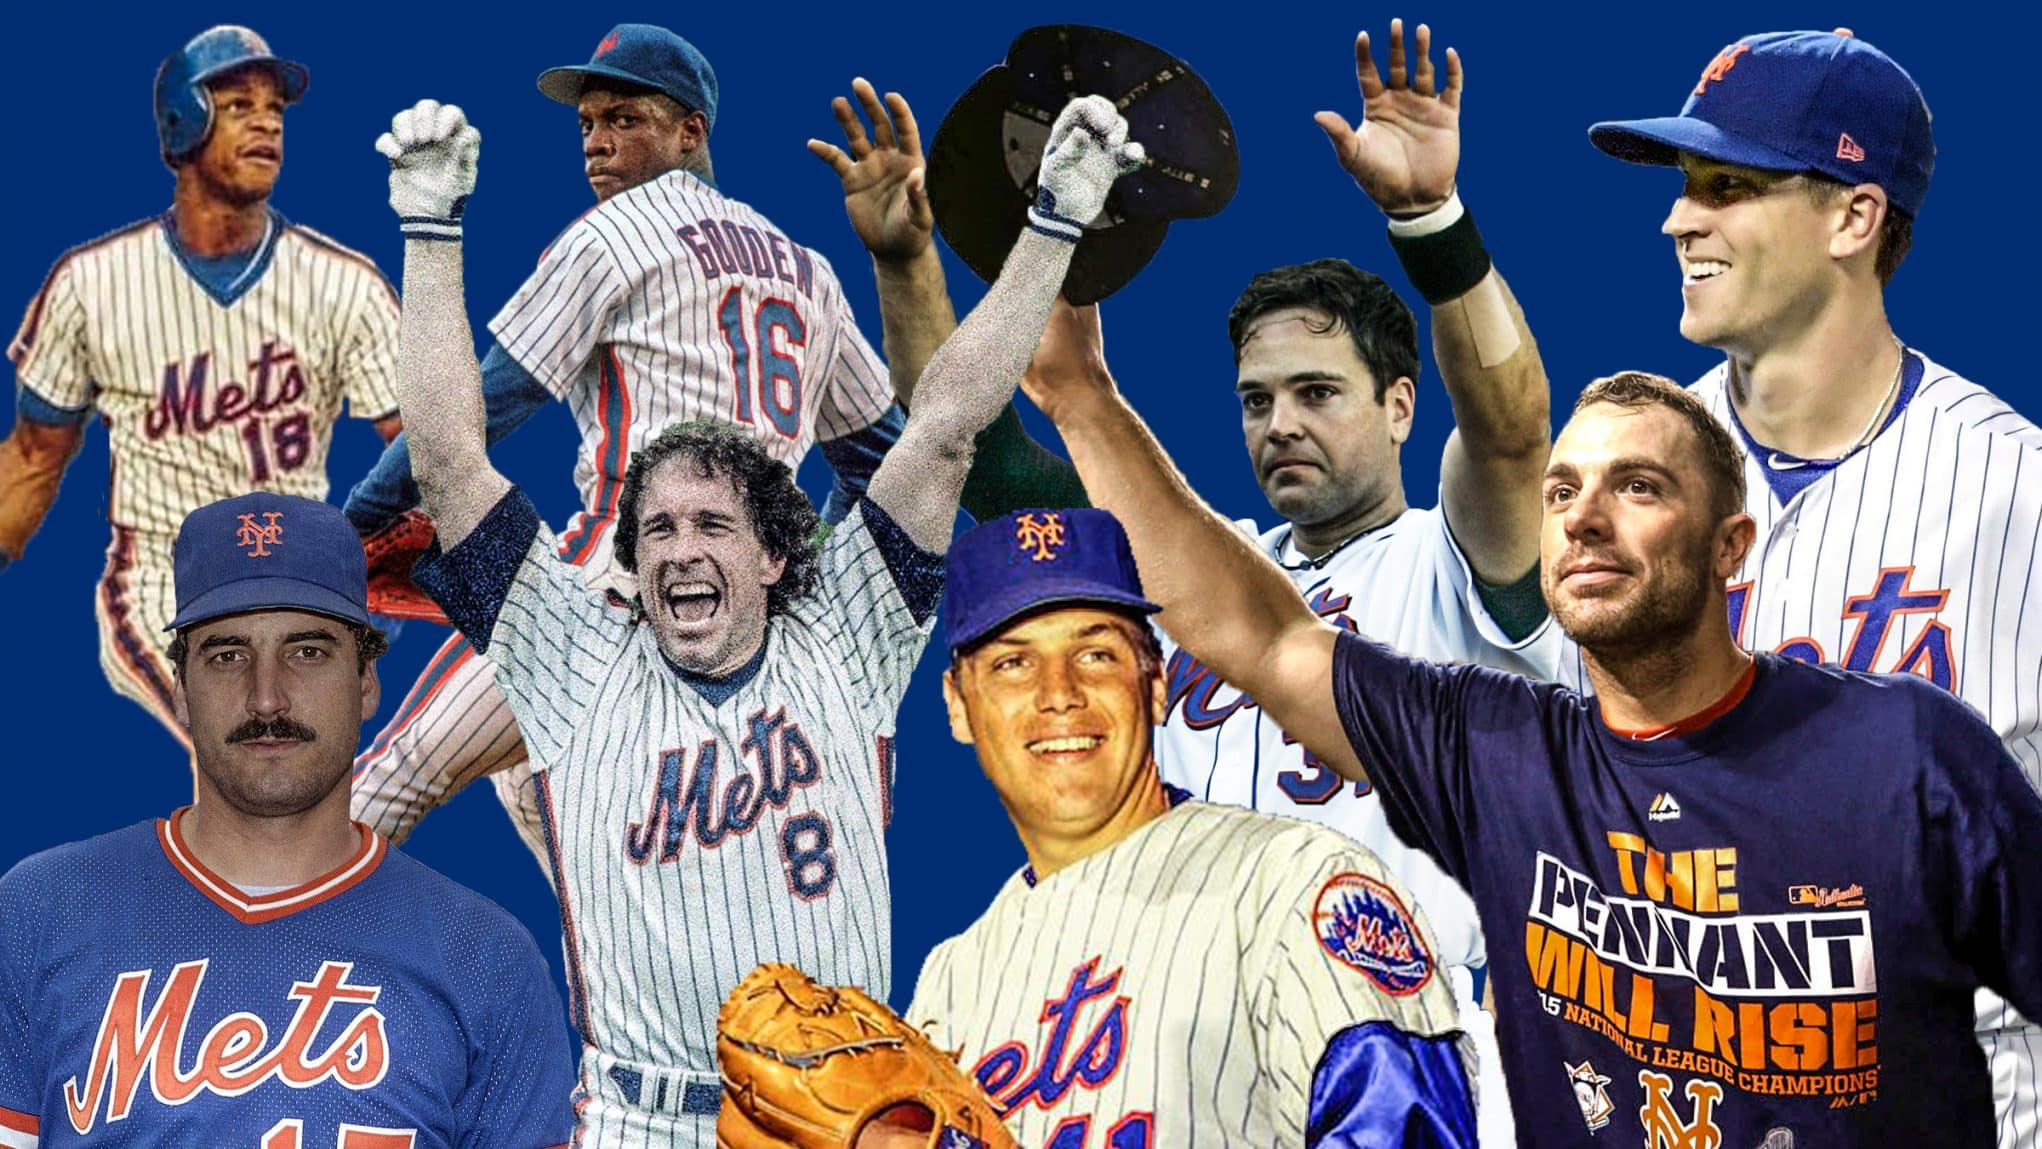 The New York Mets all time roster: Past, present and champions